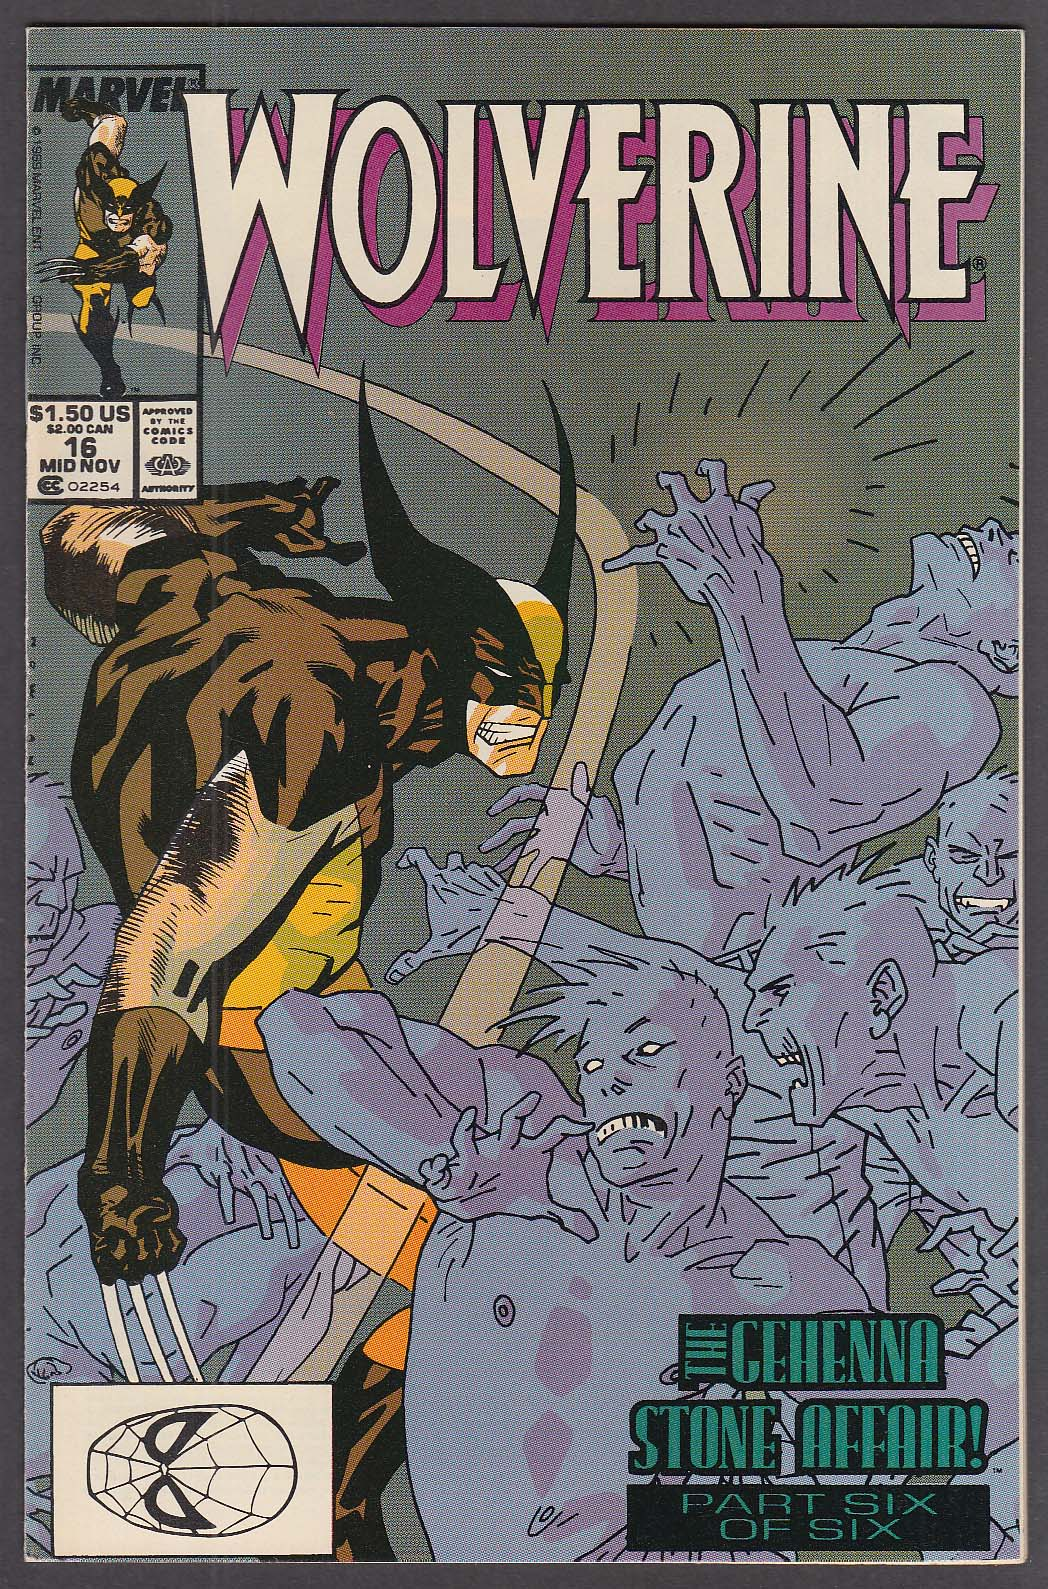 WOLVERINE #16 Marvel comic book 11 1989